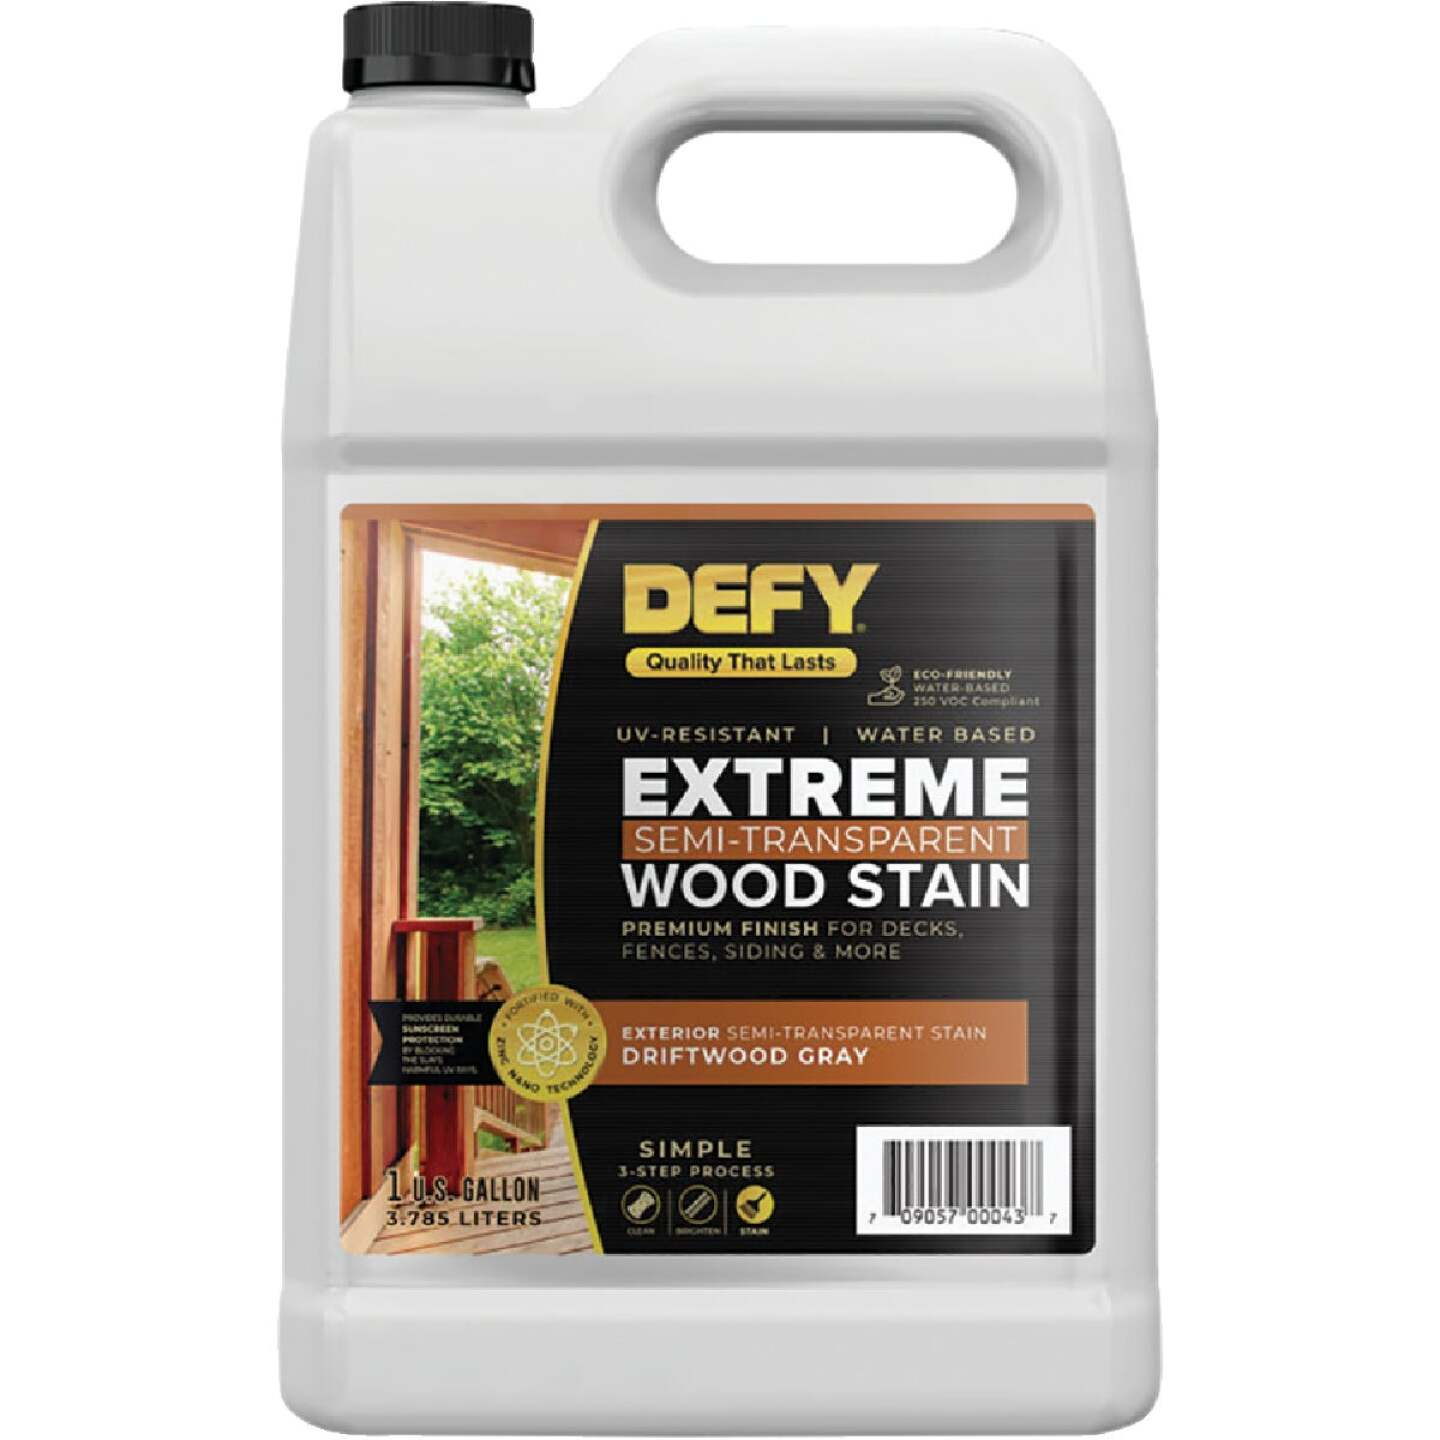 DEFY Extreme Semi-Transparent Exterior Wood Stain, Driftwood Gray, 1 Gal. Bottle Image 1